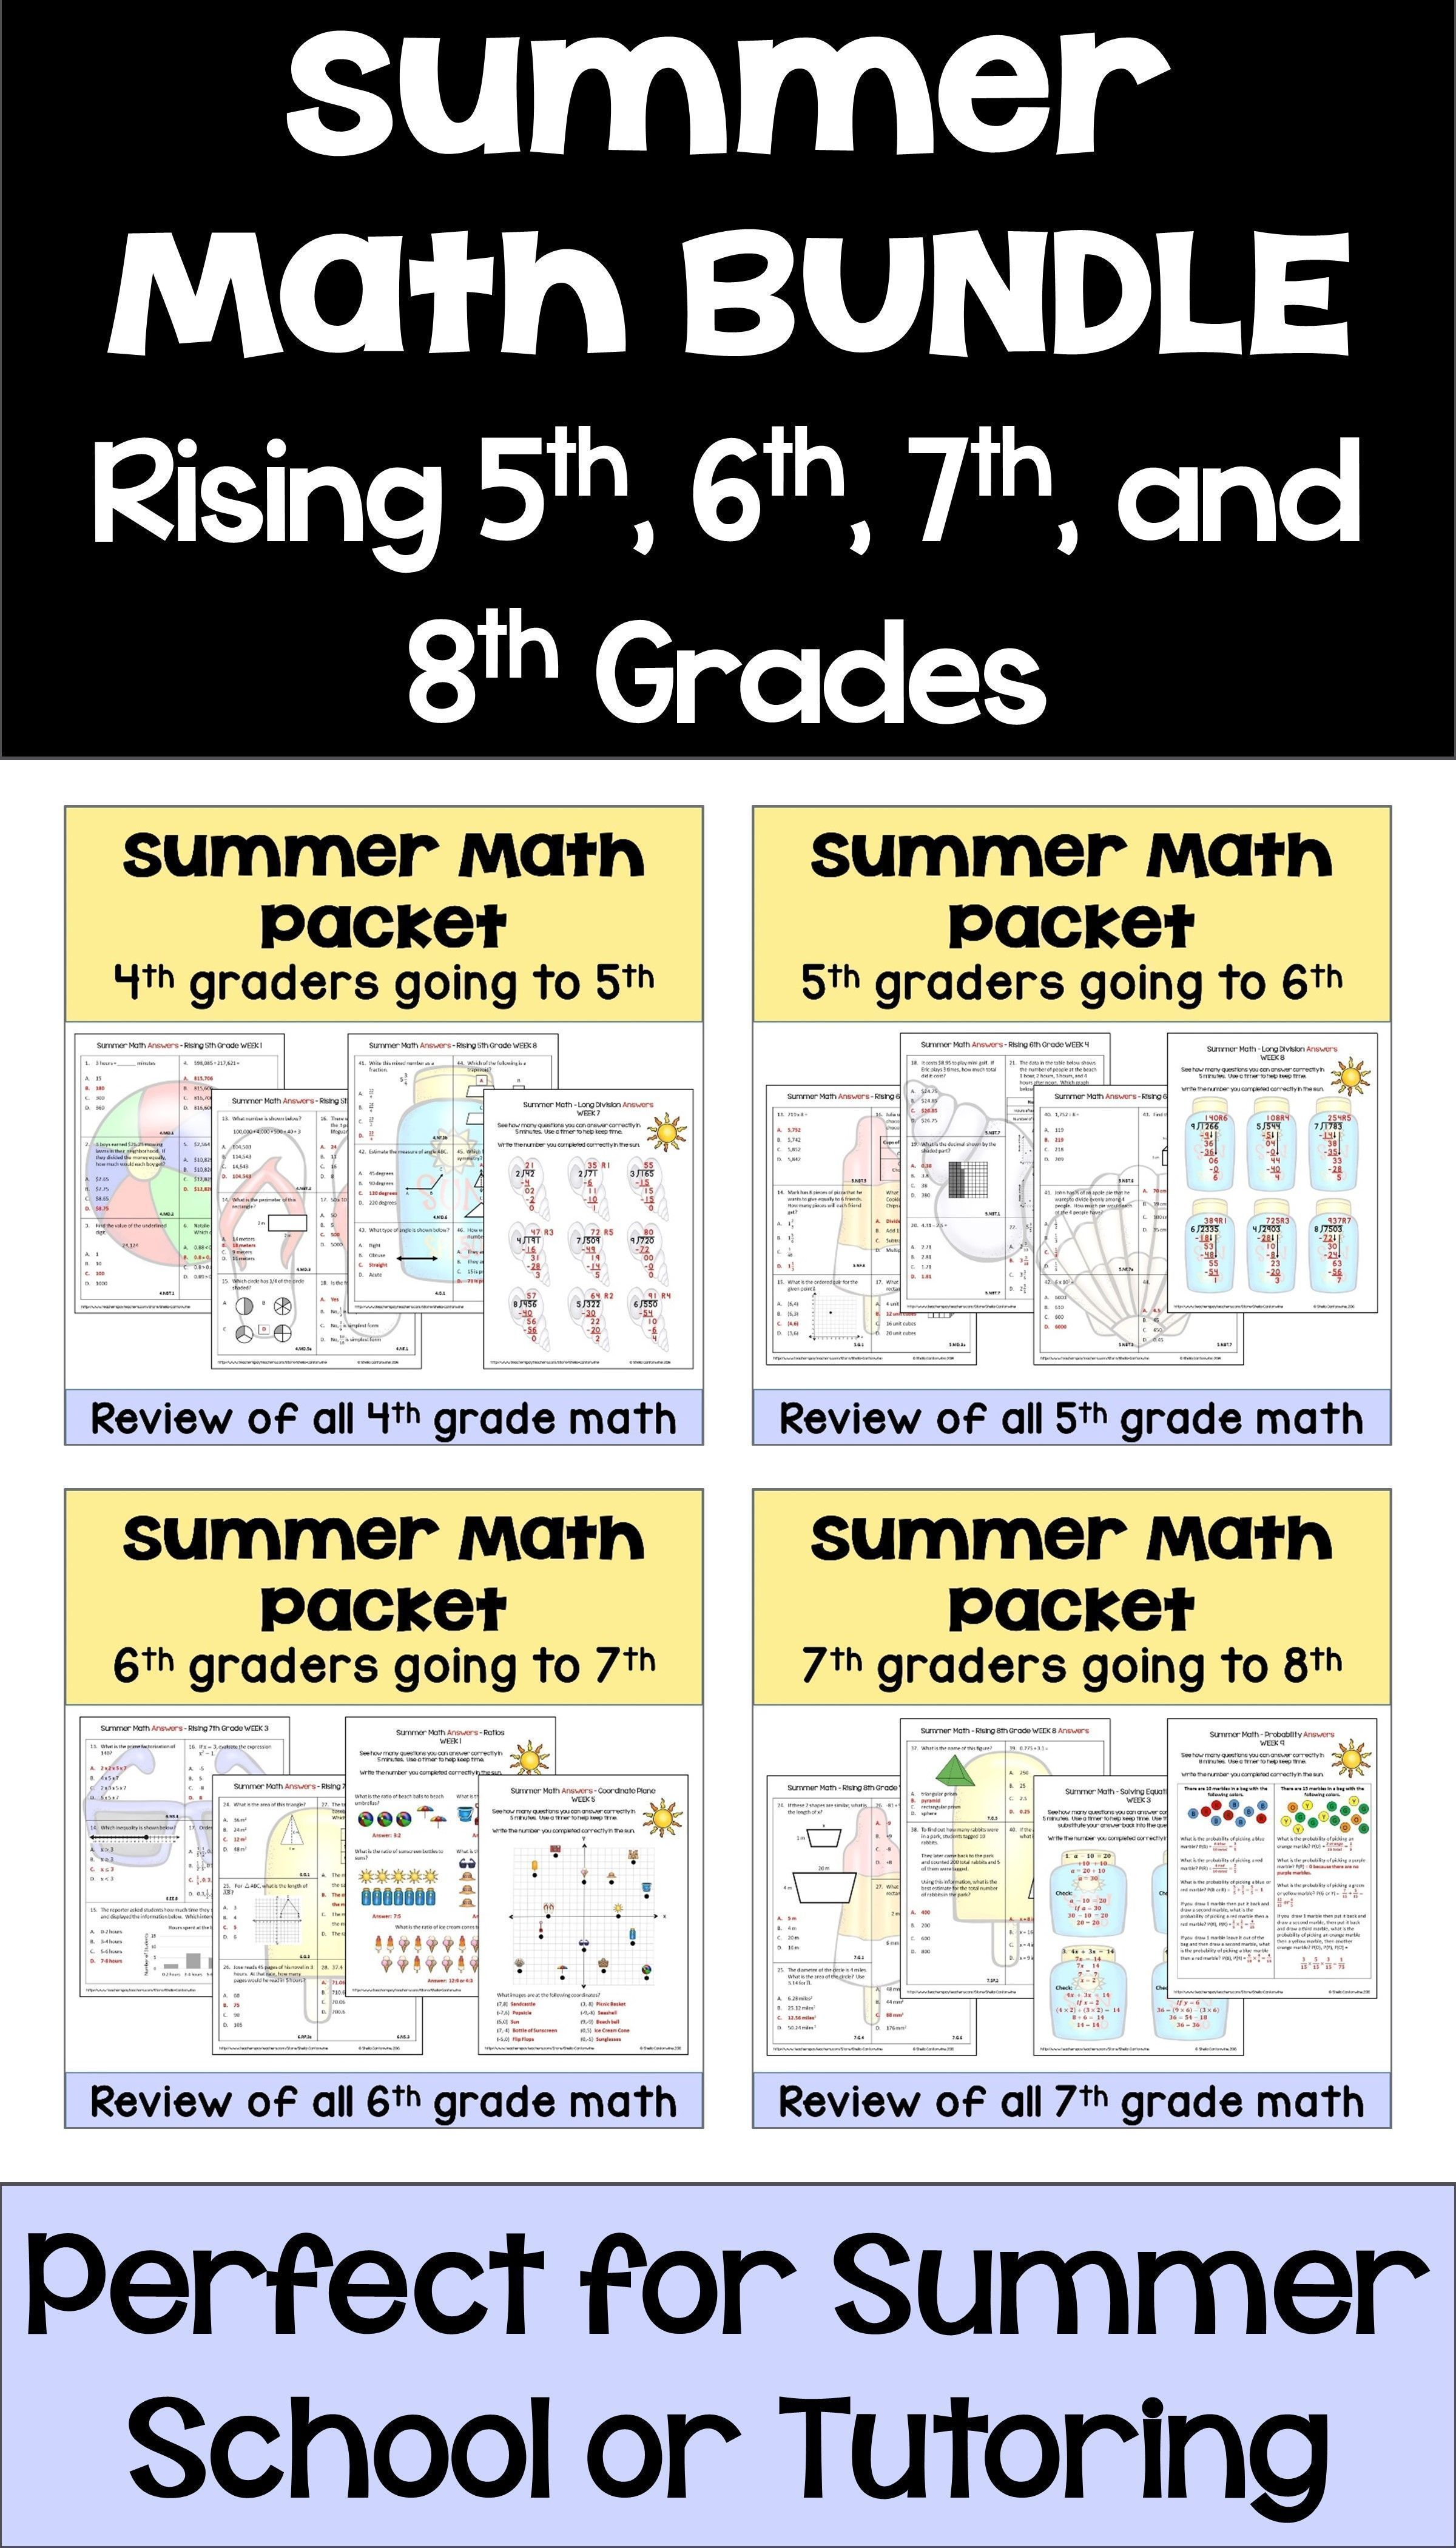 This Summer Math Bundle For Rising 5th 6th 7th And 8th Graders Has Many Different Worksheets And Lots Of Activiti Summer Math Math Packets Summer Math Packet [ 4200 x 2400 Pixel ]